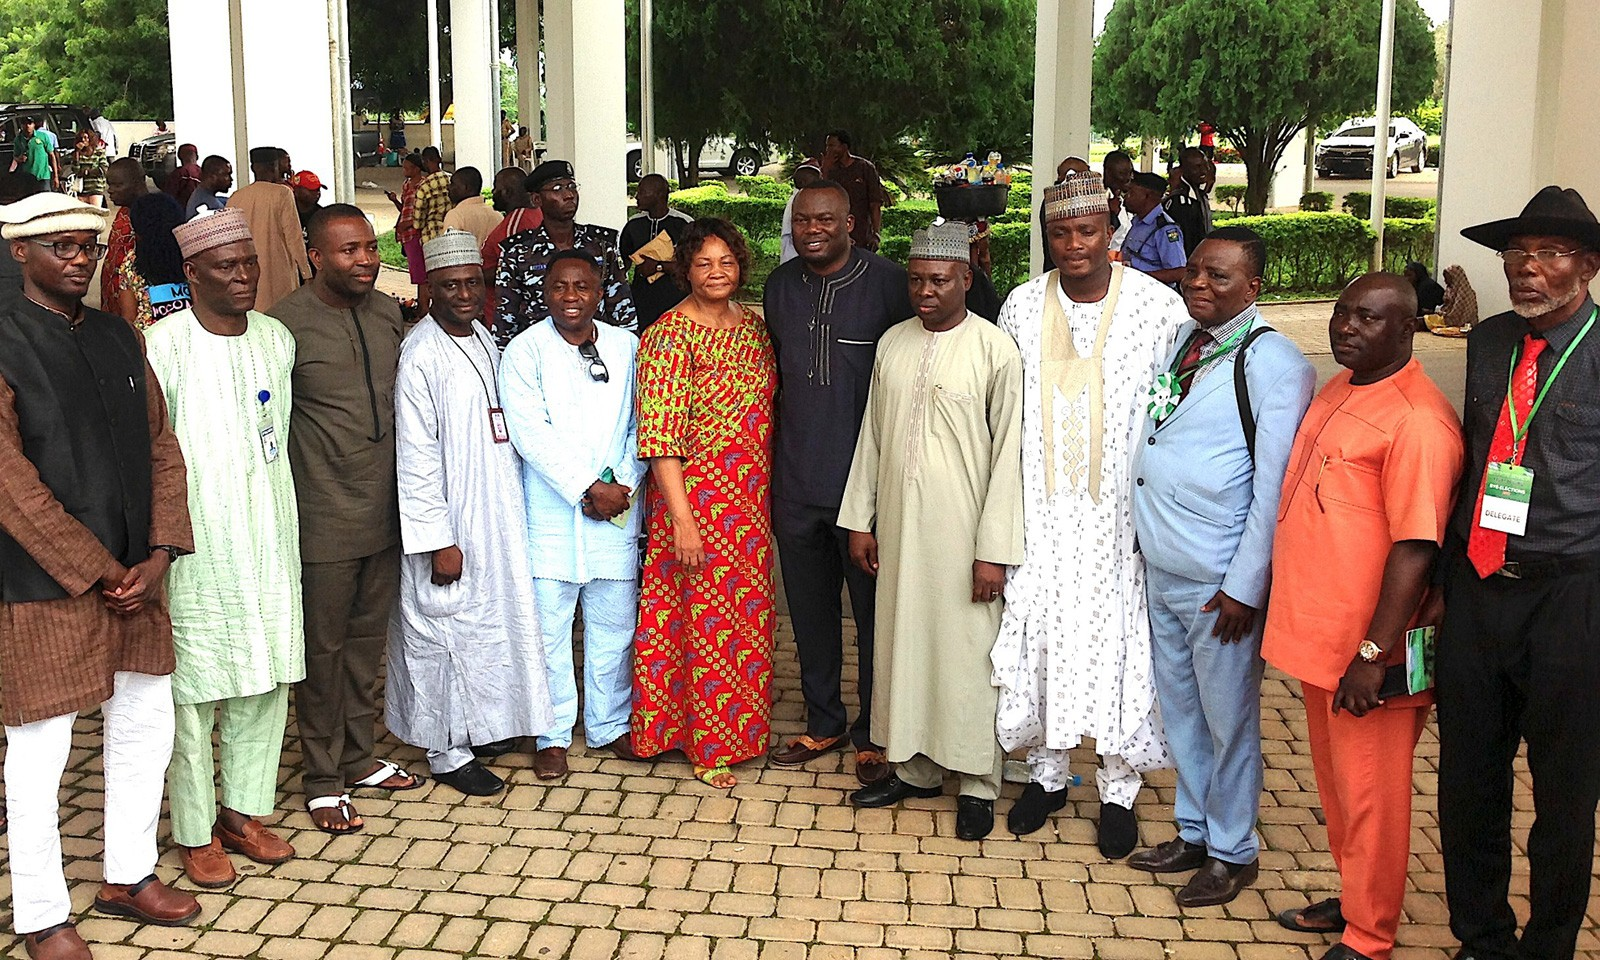 The newly elected board members of the Athletics Federation of Nigeria (AFN) in Abuja - 21 July, 2017 / Photo Credit: GongNews.net